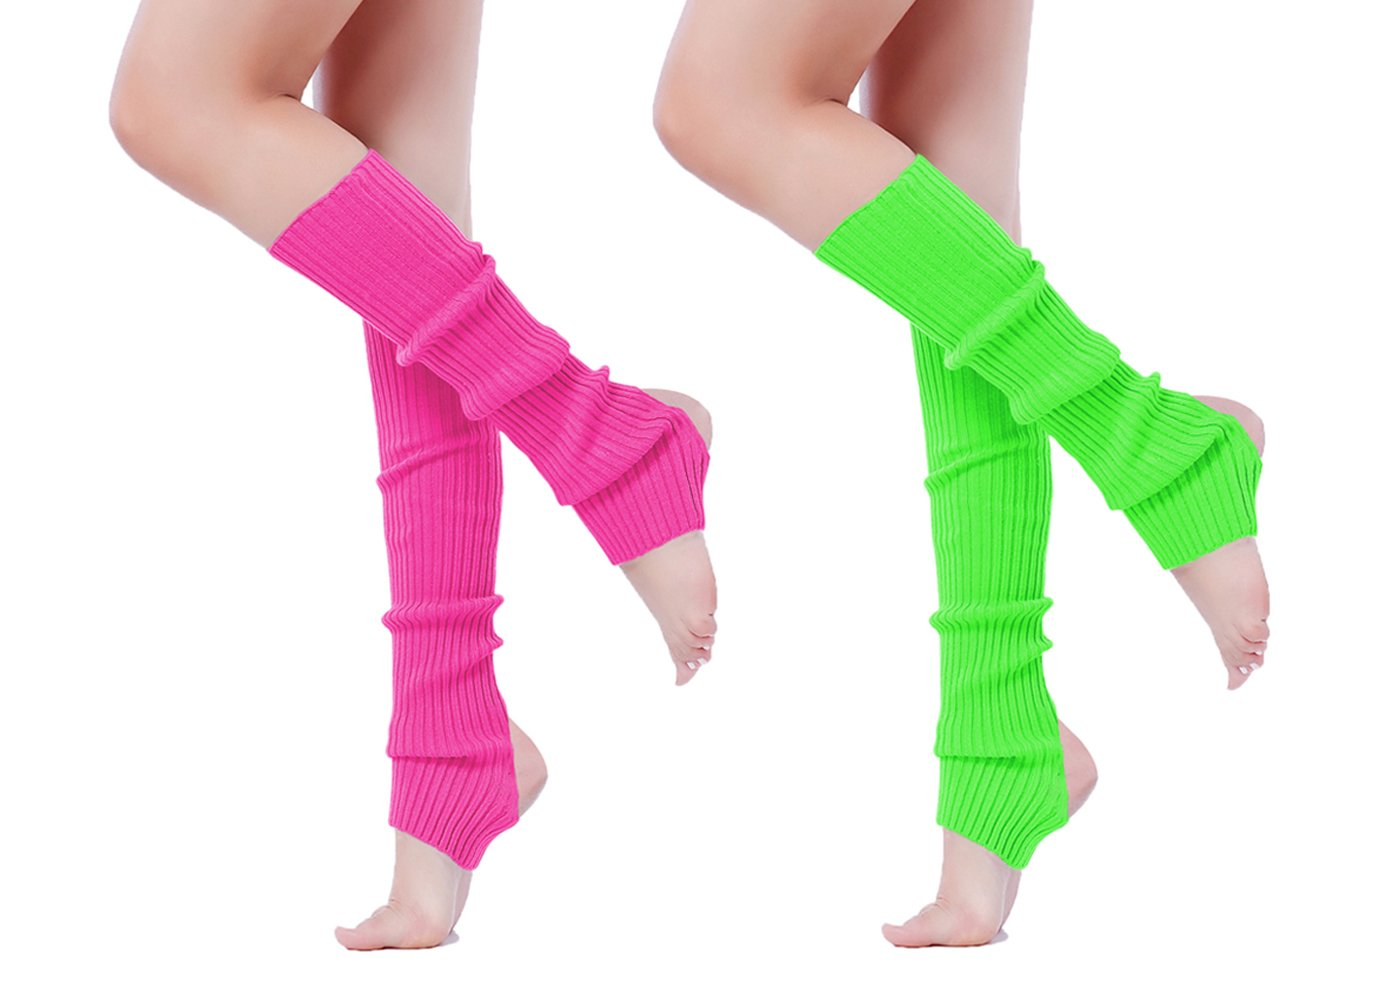 V28 Women Girls Neon Pink Stirrup Ribbed for 80s Party Yoga Leg Warmers (Hole Rose+Green)